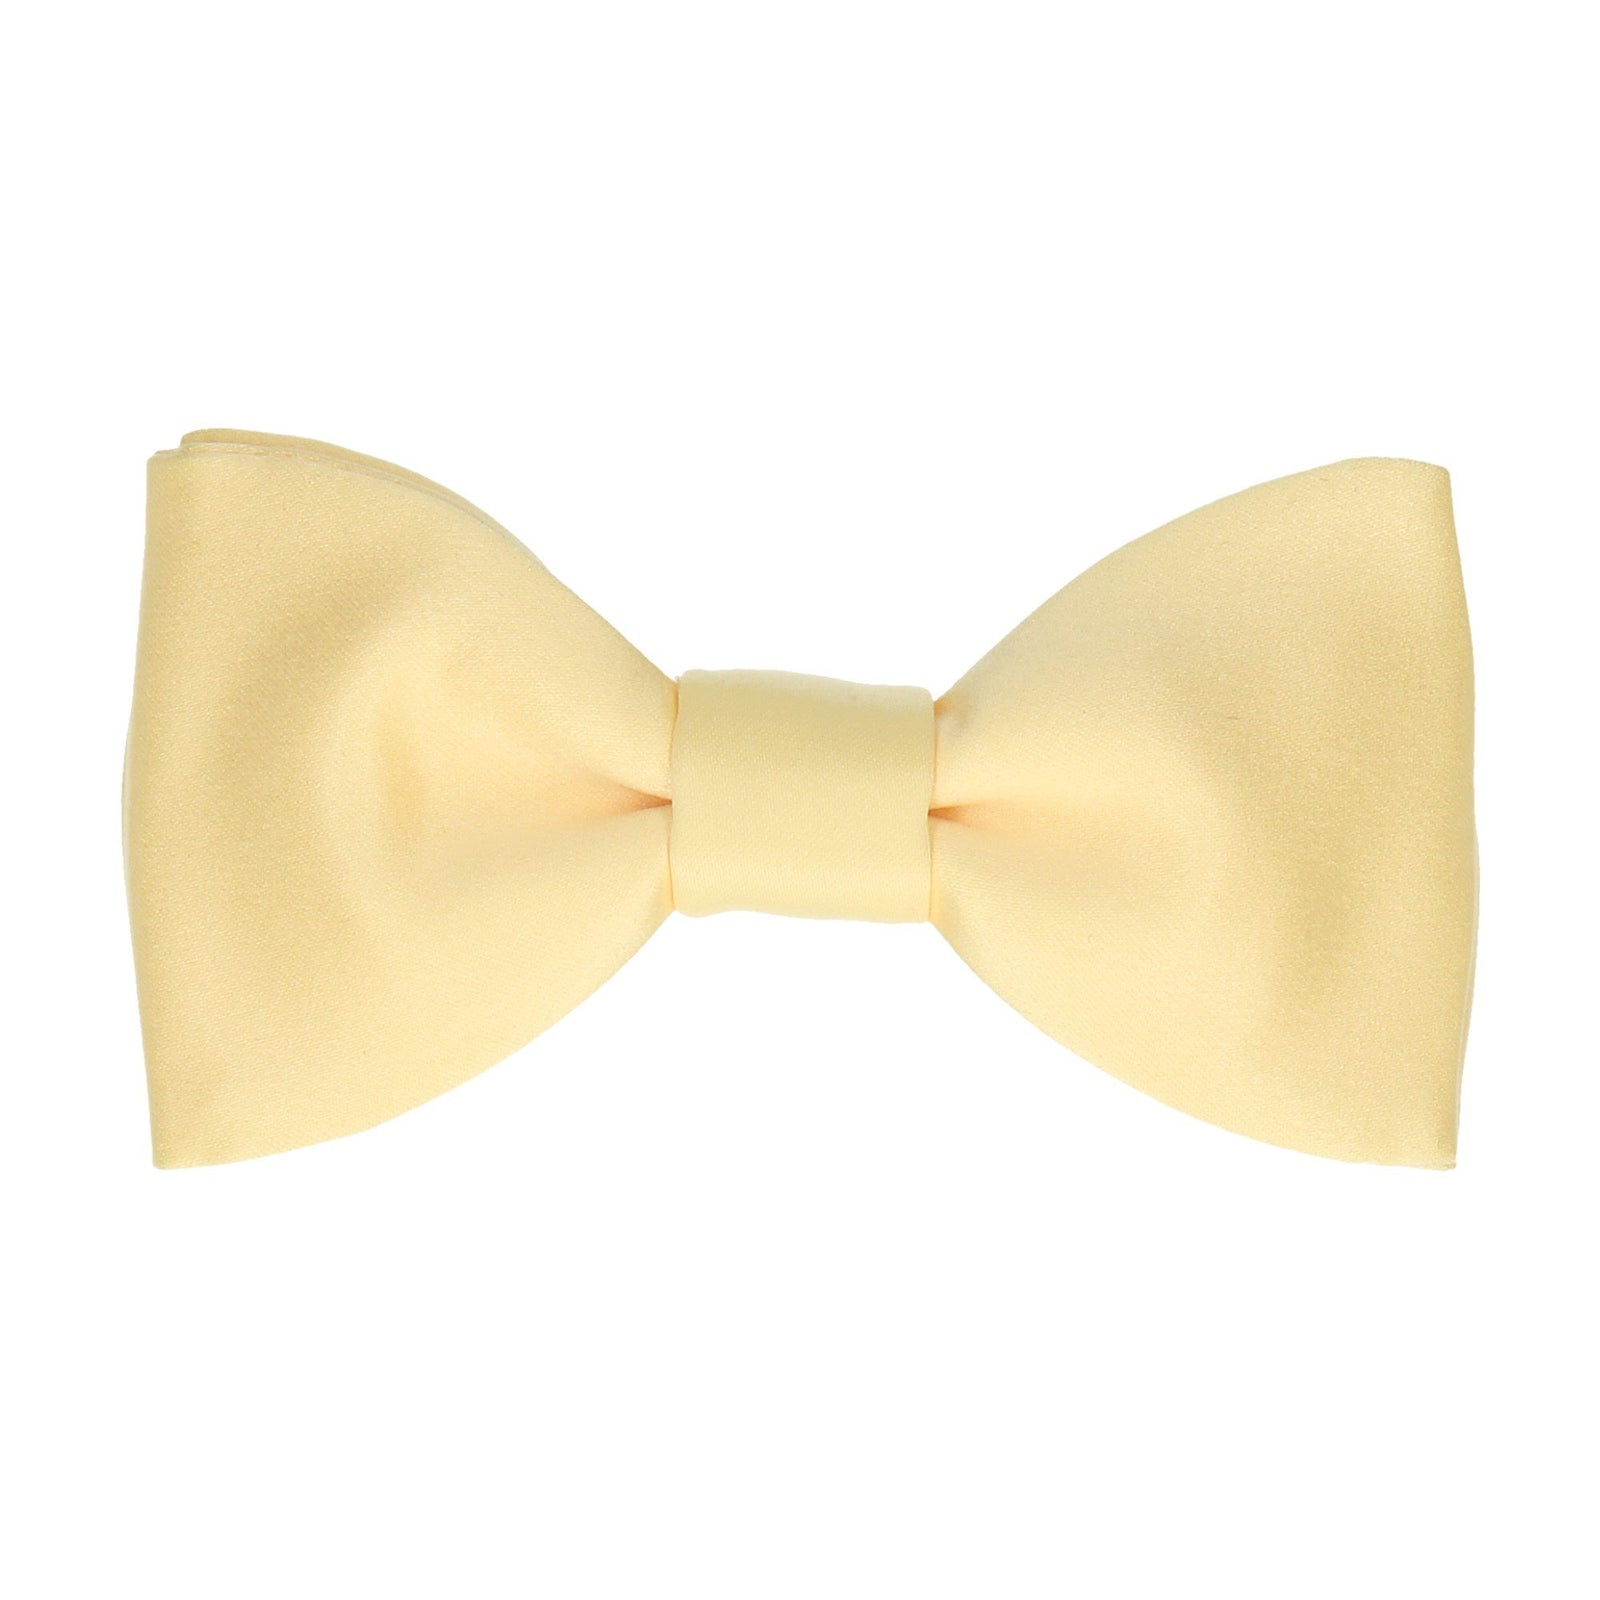 Satin in Pastel Yellow Bow Tie